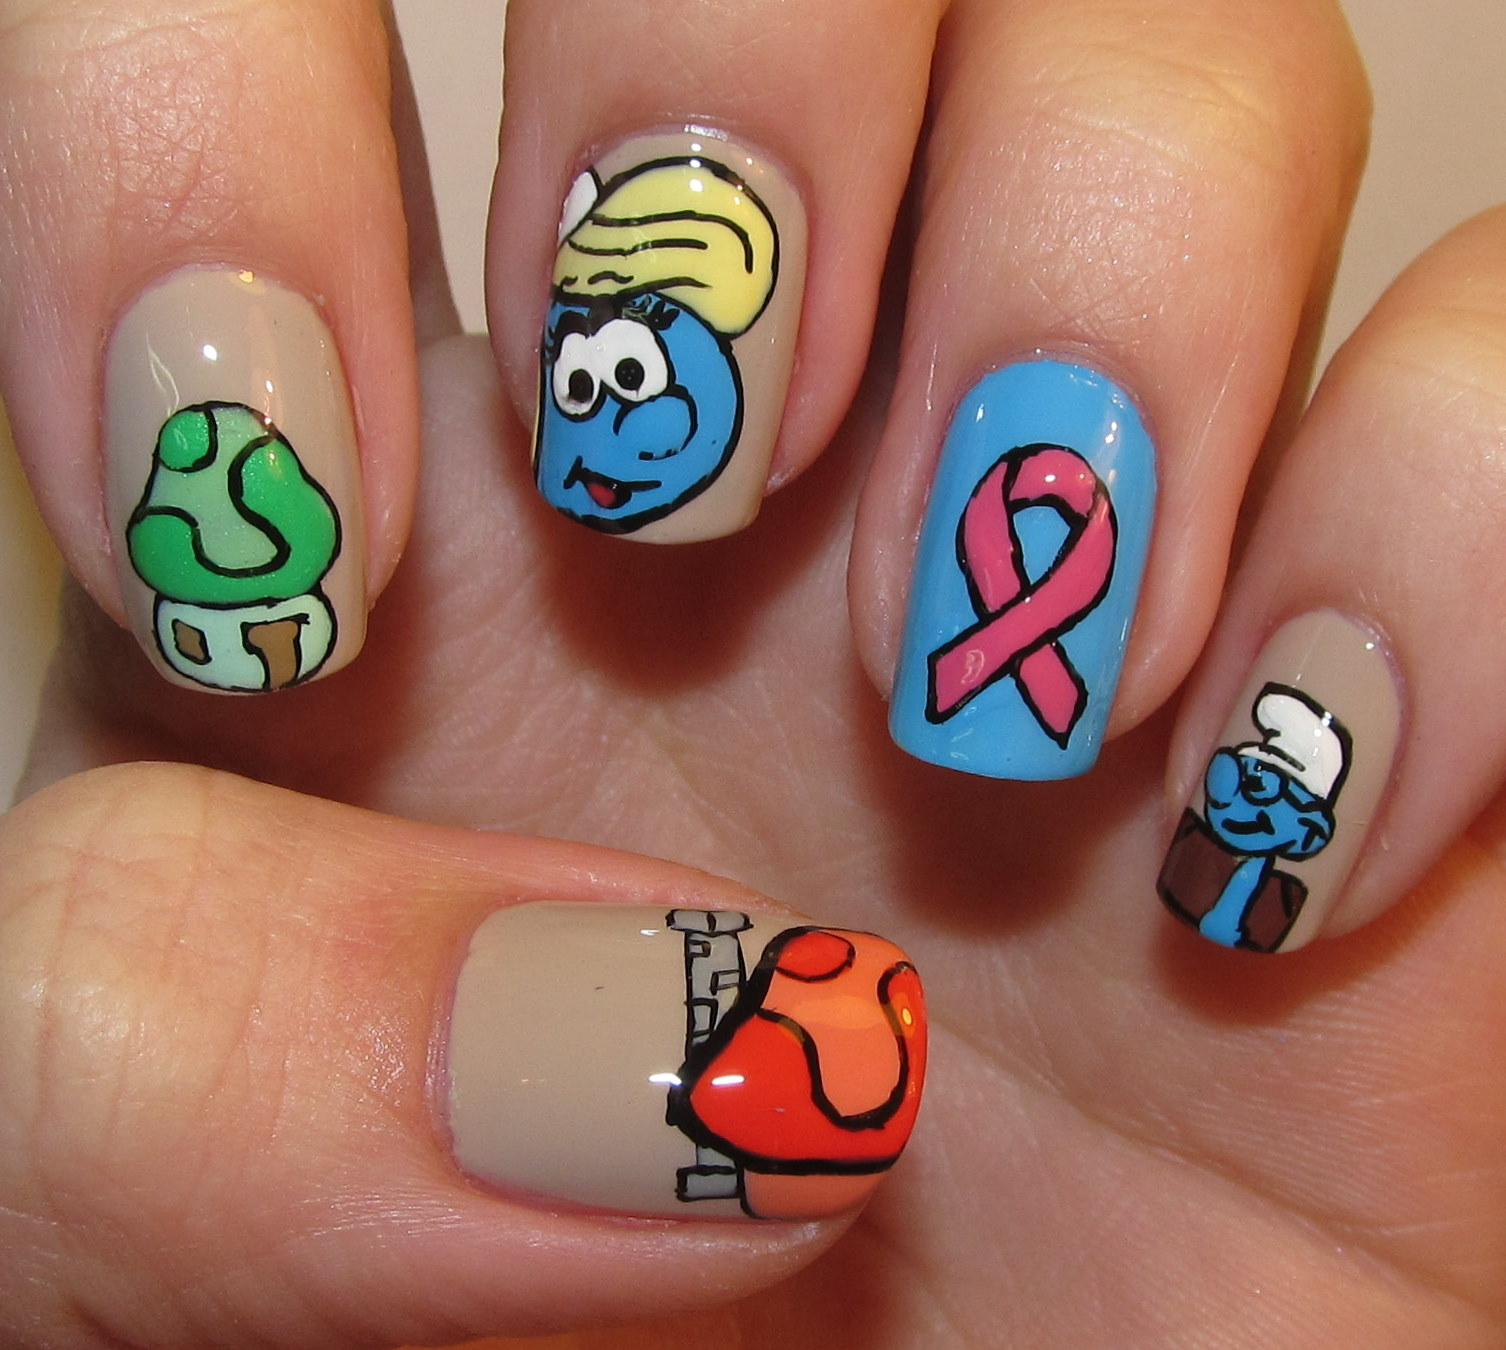 MySmurfsVillage.Com Nail Art Video